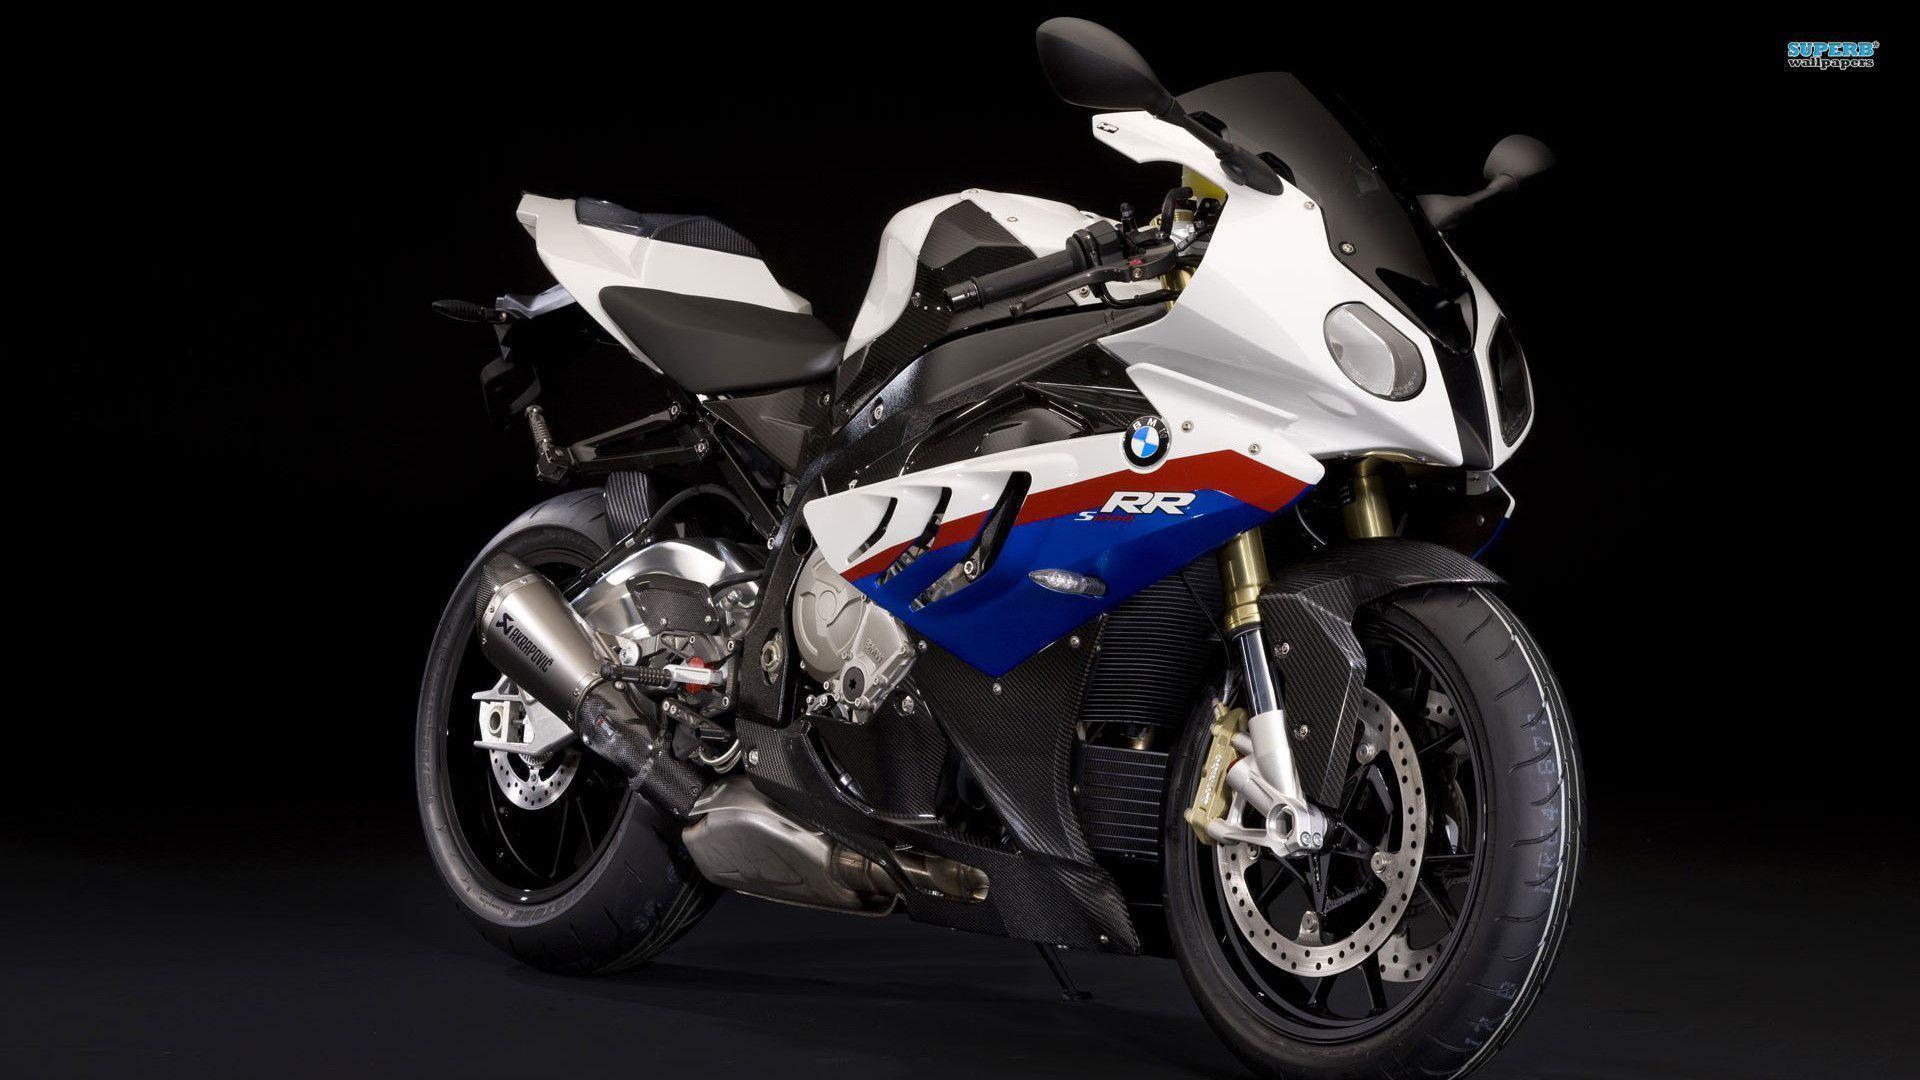 bmw s1000rr wallpaper 1920x1080 bmw s1000rr wallpaper motorcycle